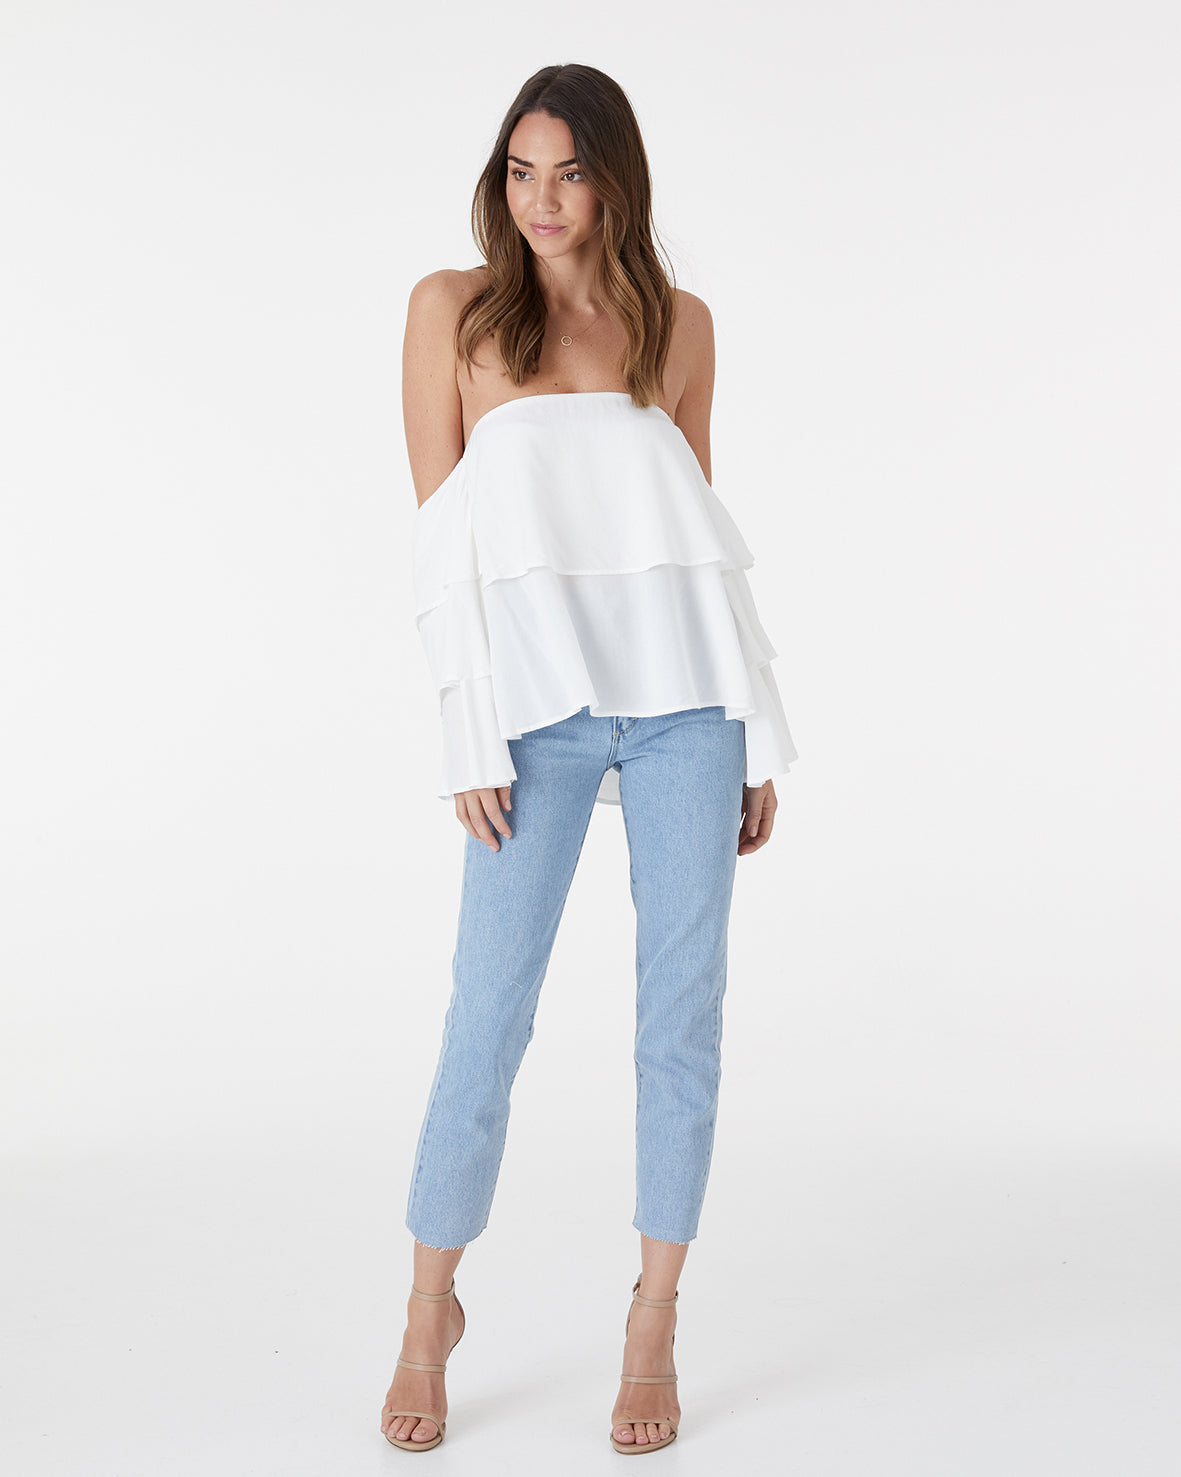 WAVES TOP - WHITE